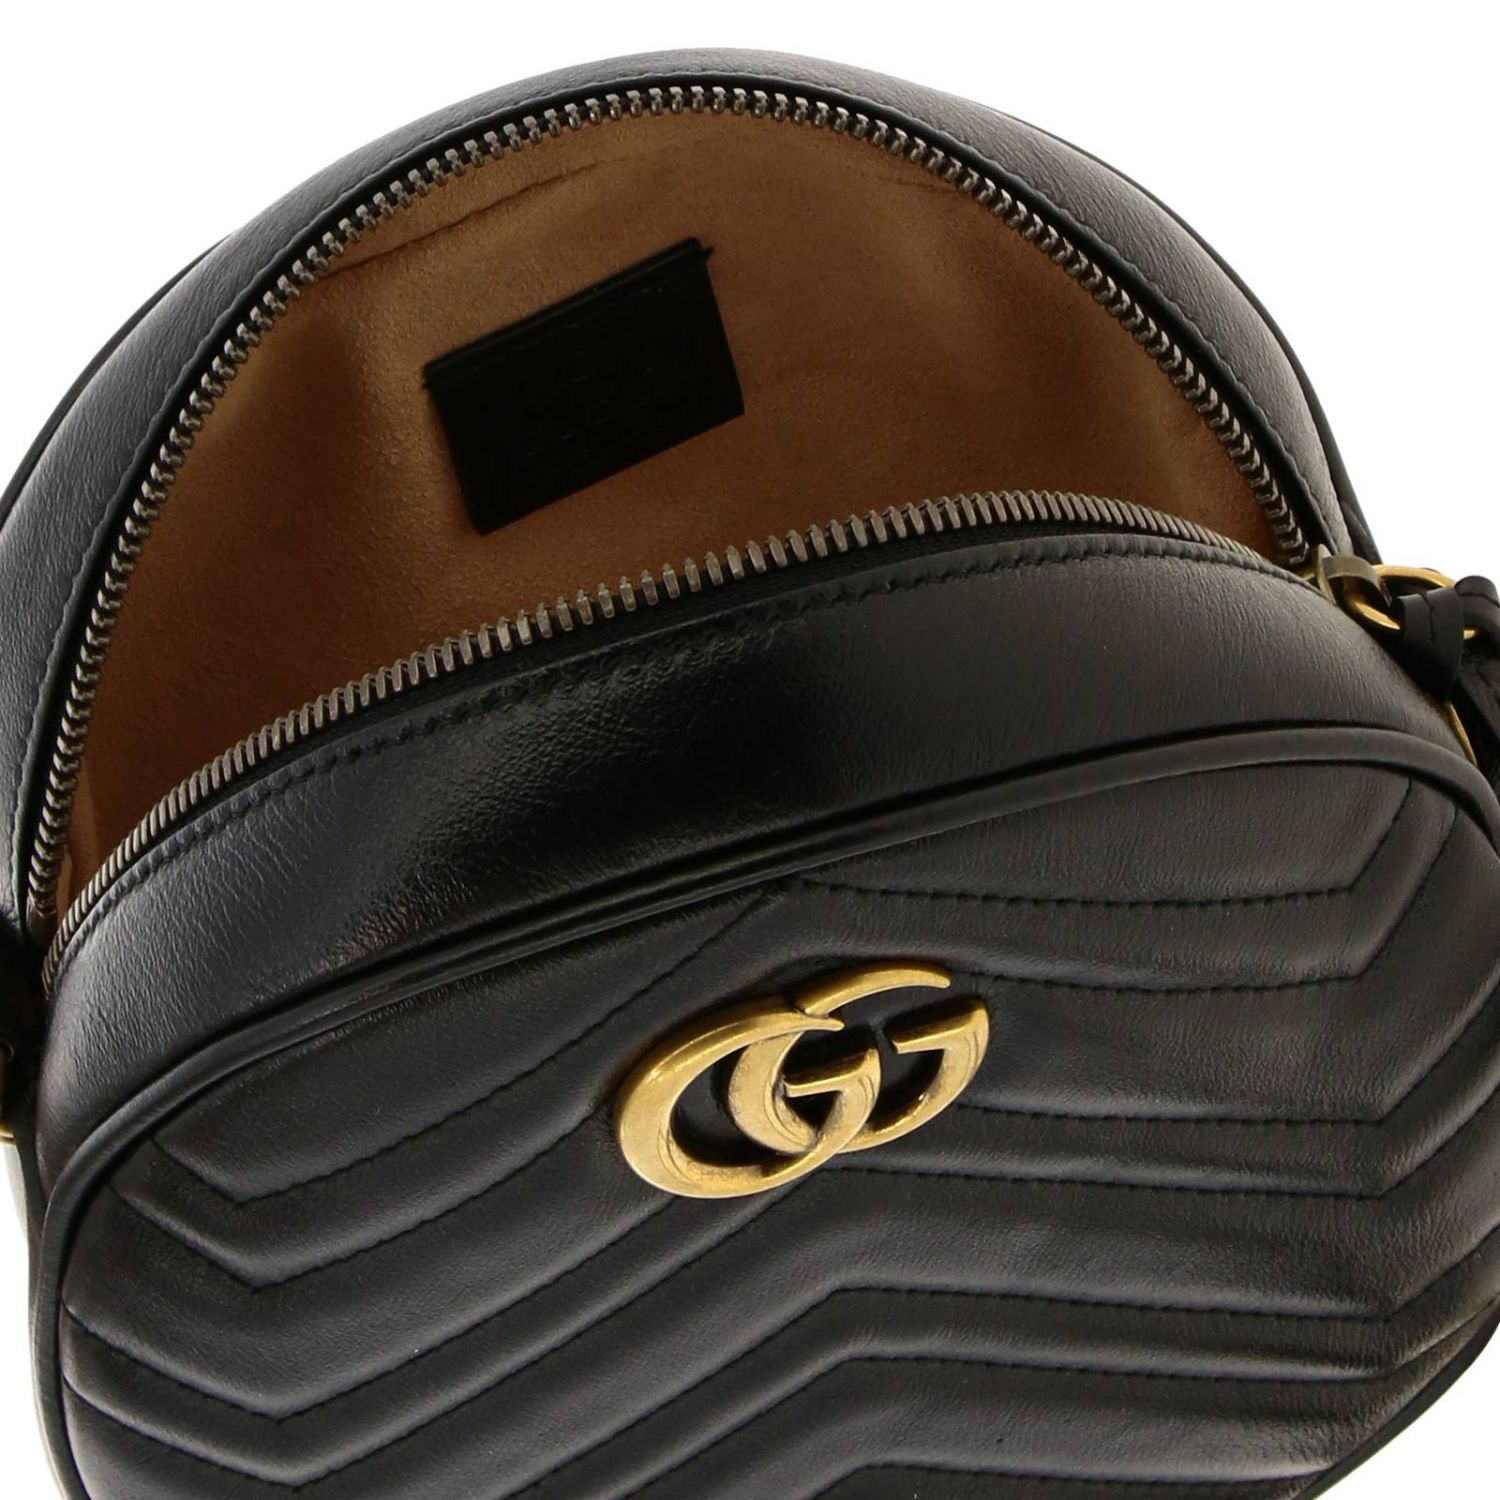 Mini bag Gucci: GG Marmont Gucci quilted leather disco bag black 5